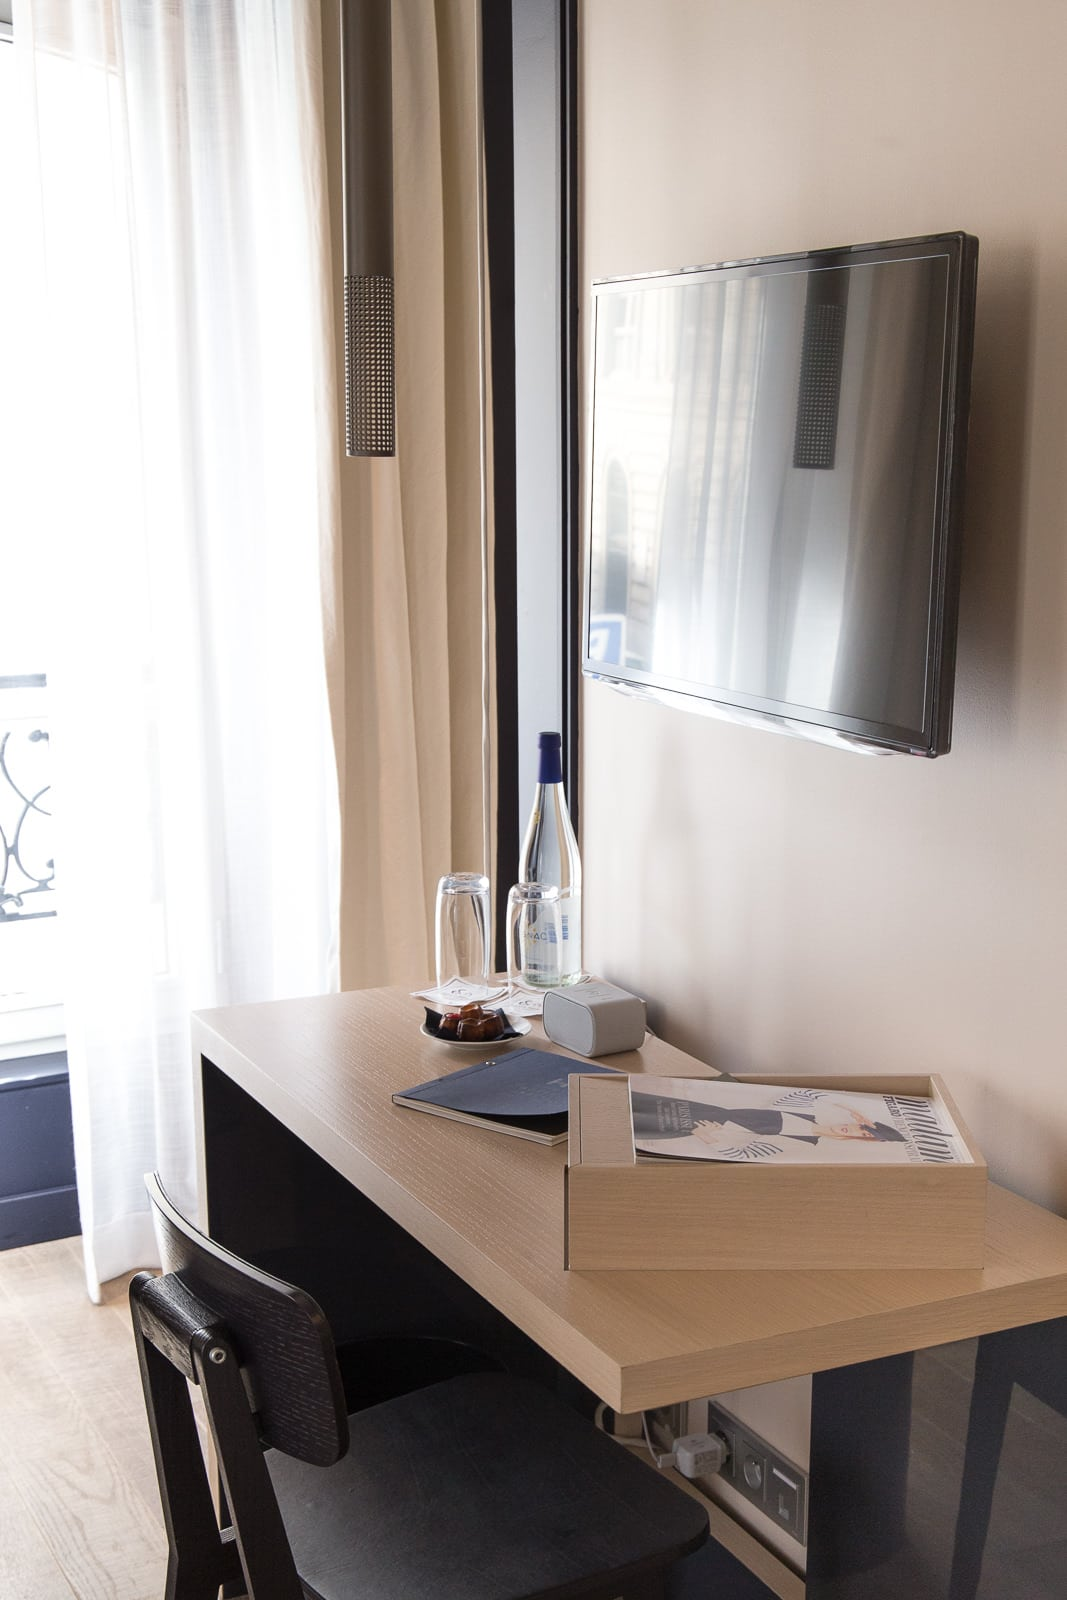 Bluetooth Sessel Übernachten Im Design Hotel: L'hôtel De Nell In Paris